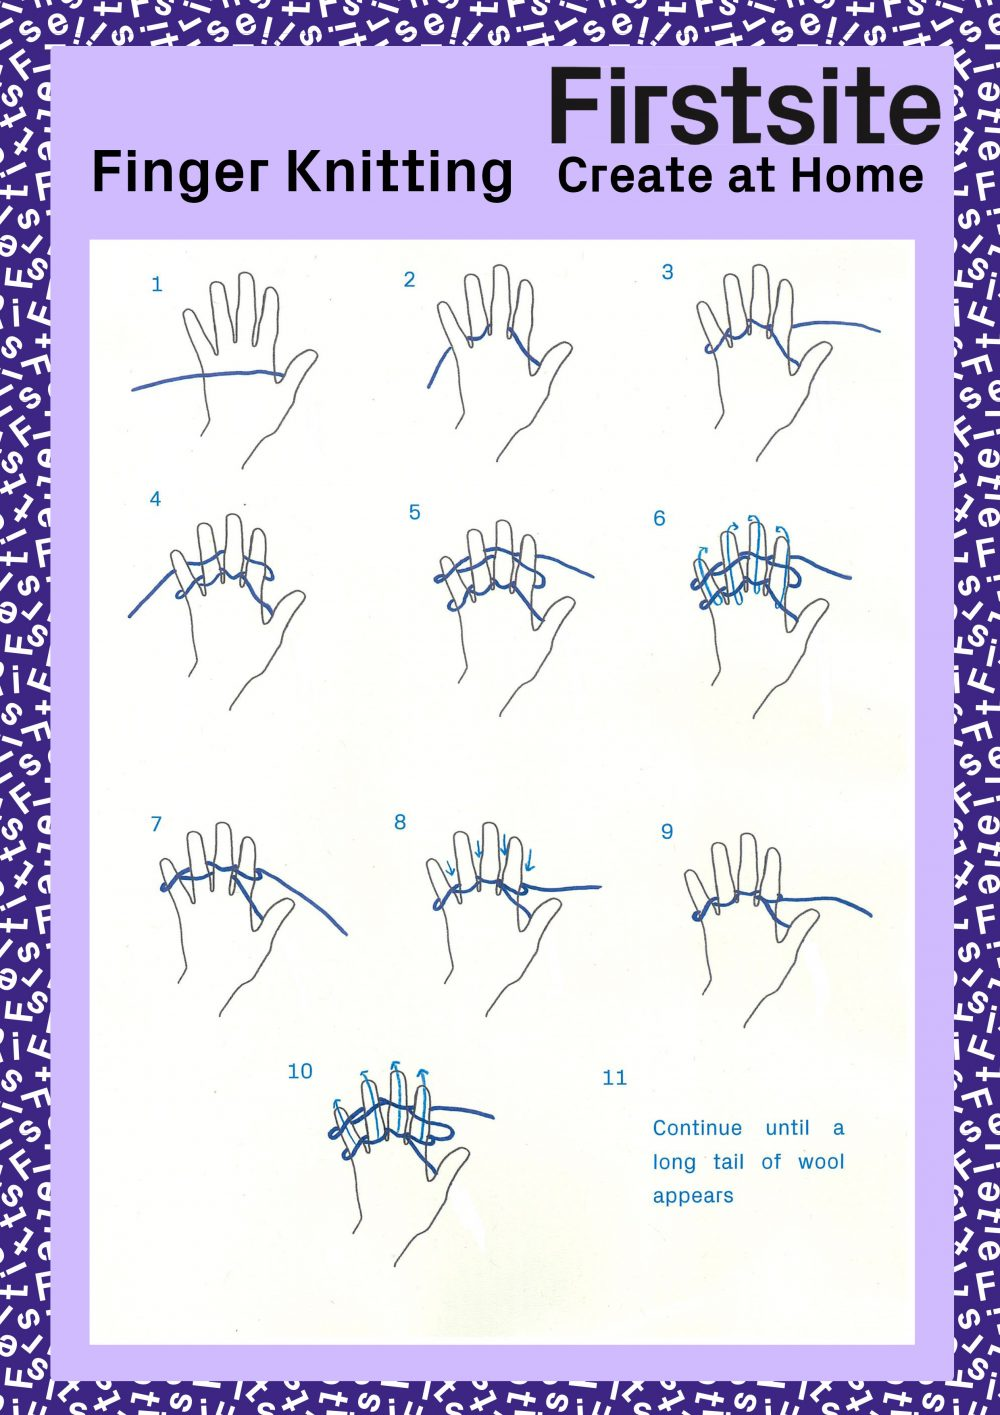 Instructions for finger knitting page 3 of 3